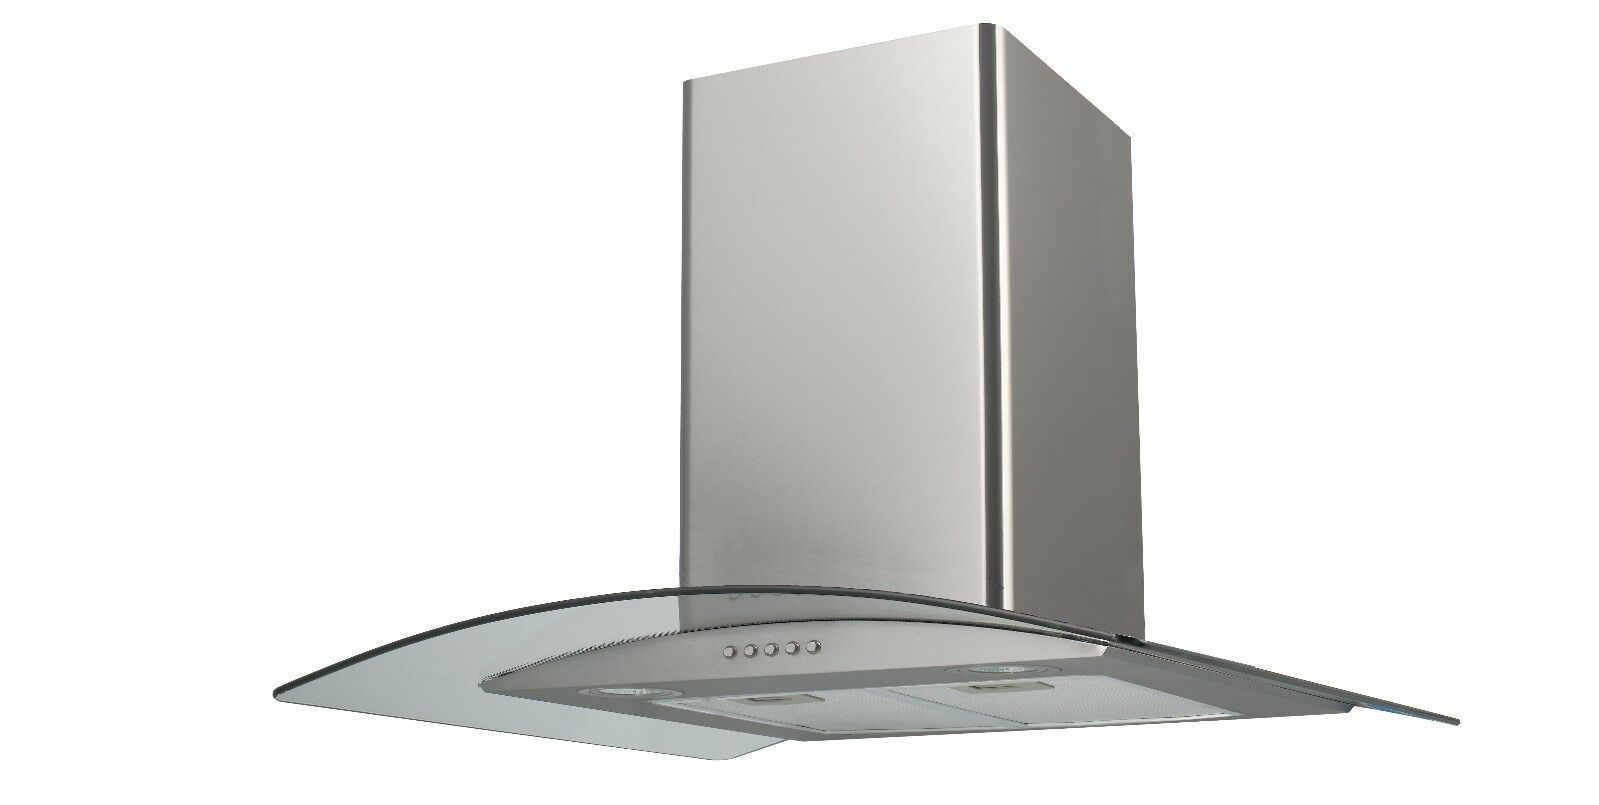 saga eh70gs 70cm stainless steel glass kitchen extractor